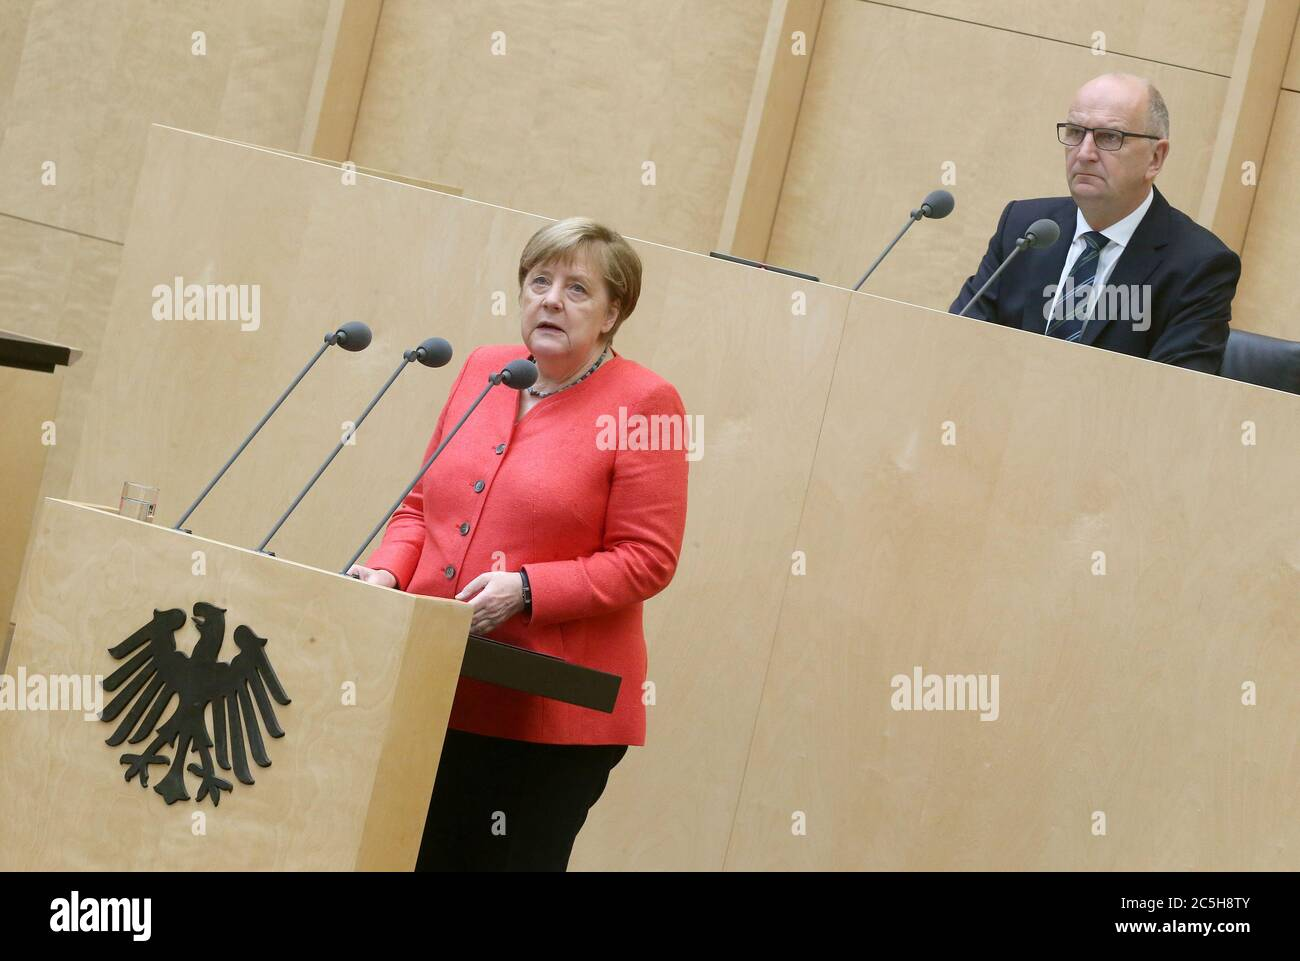 Berlin, Germany. 03rd July, 2020. Chancellor Angela Merkel (CDU) gives a speech in the Bundesrat on the objectives of the EU Council Presidency. Dietmar Woidke (SPD), President of the Bundesrat, follows the speech. Credit: Wolfgang Kumm/dpa/Alamy Live News Stock Photo